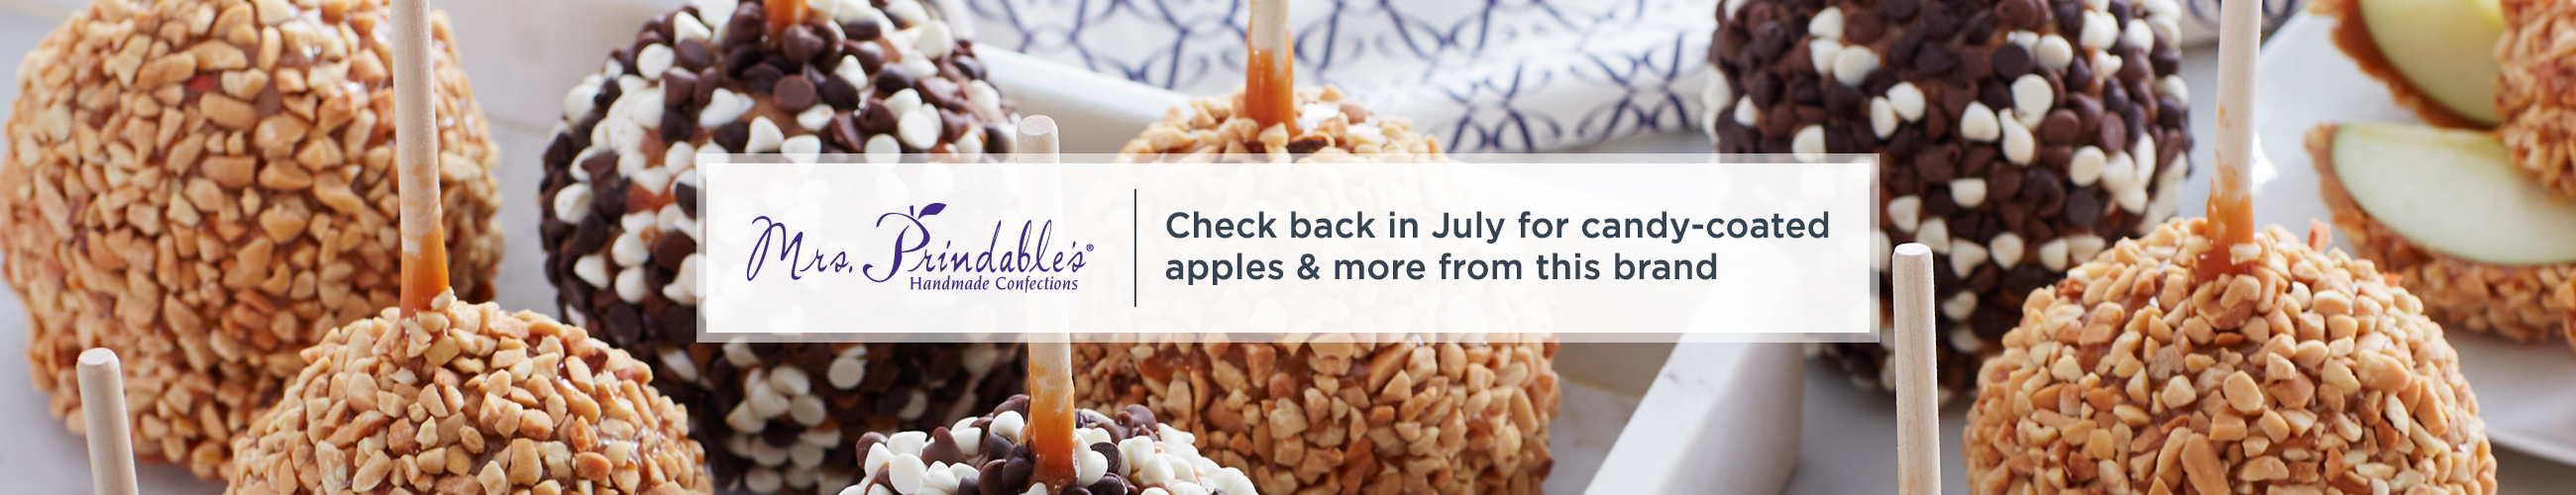 Mrs. Prindable's,  Check back in July for candy-coated apples & more from this brand